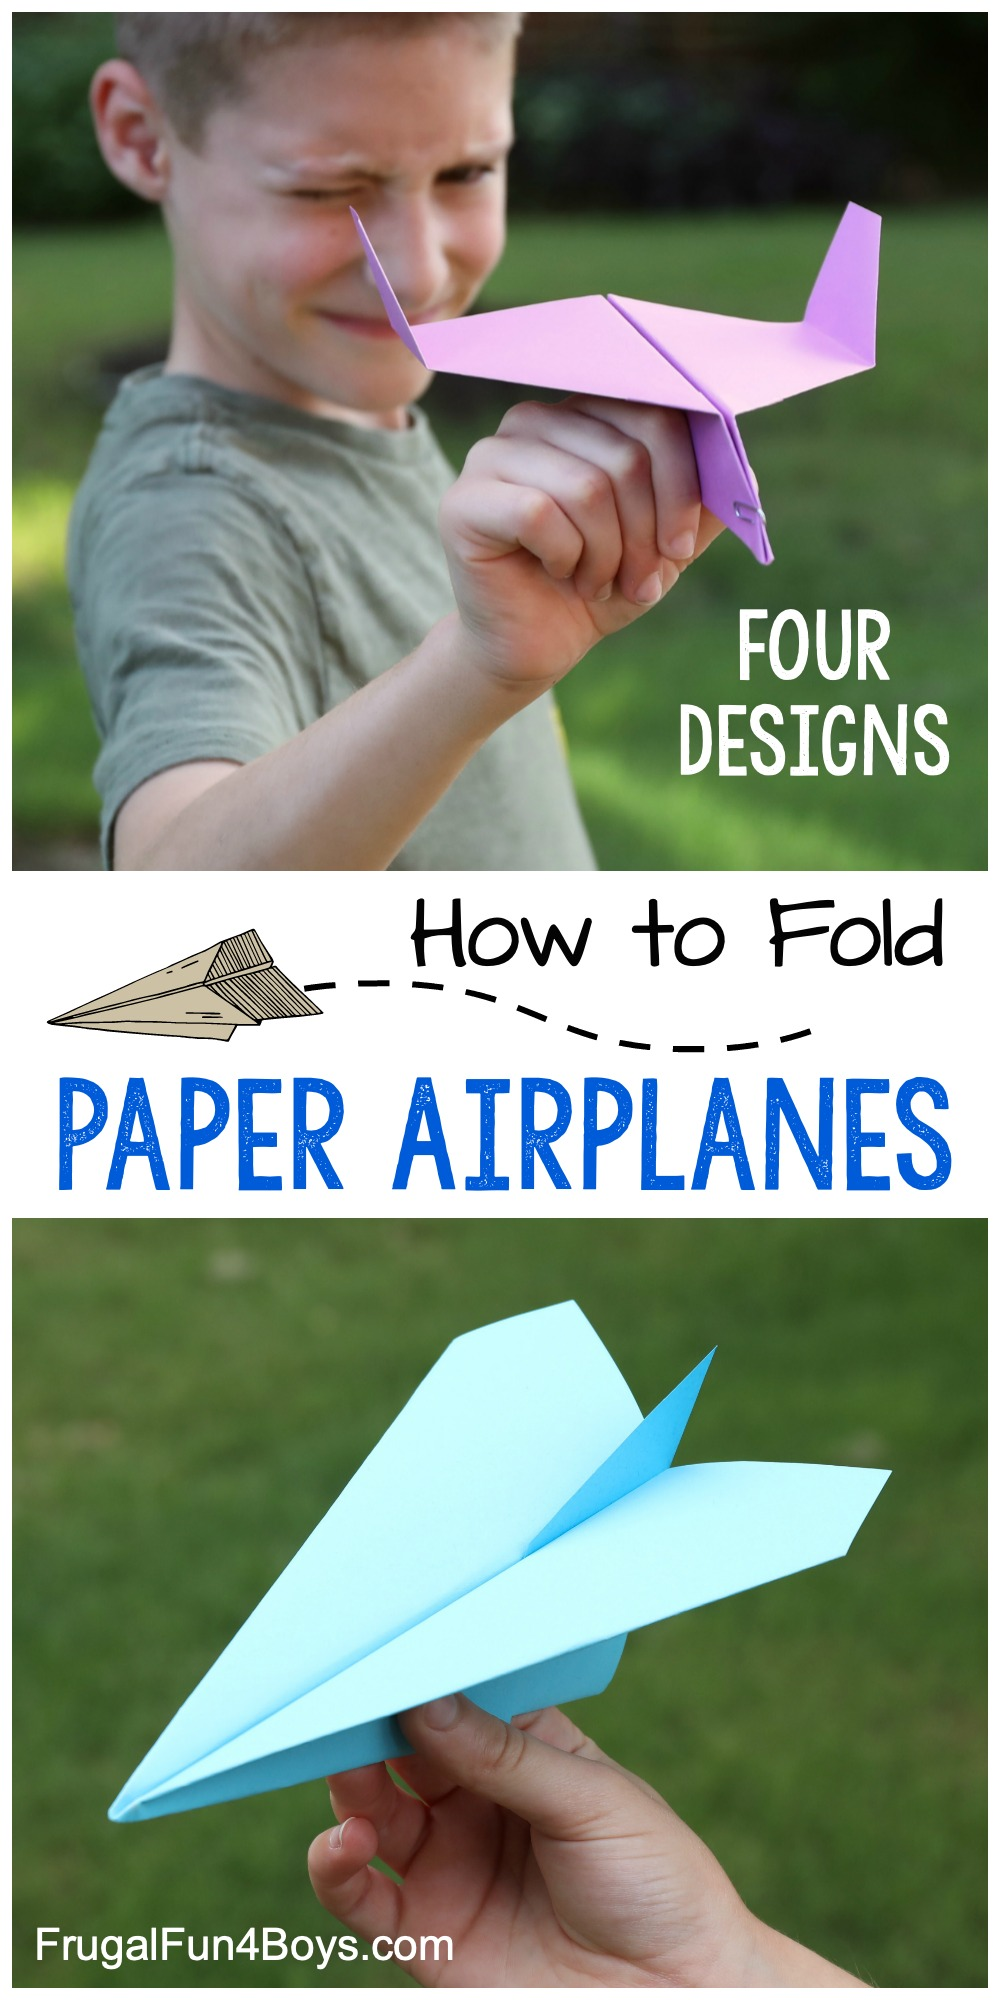 How To Make Awesome Paper Airplanes 4 Designs Frugal Fun For Boys And Girls